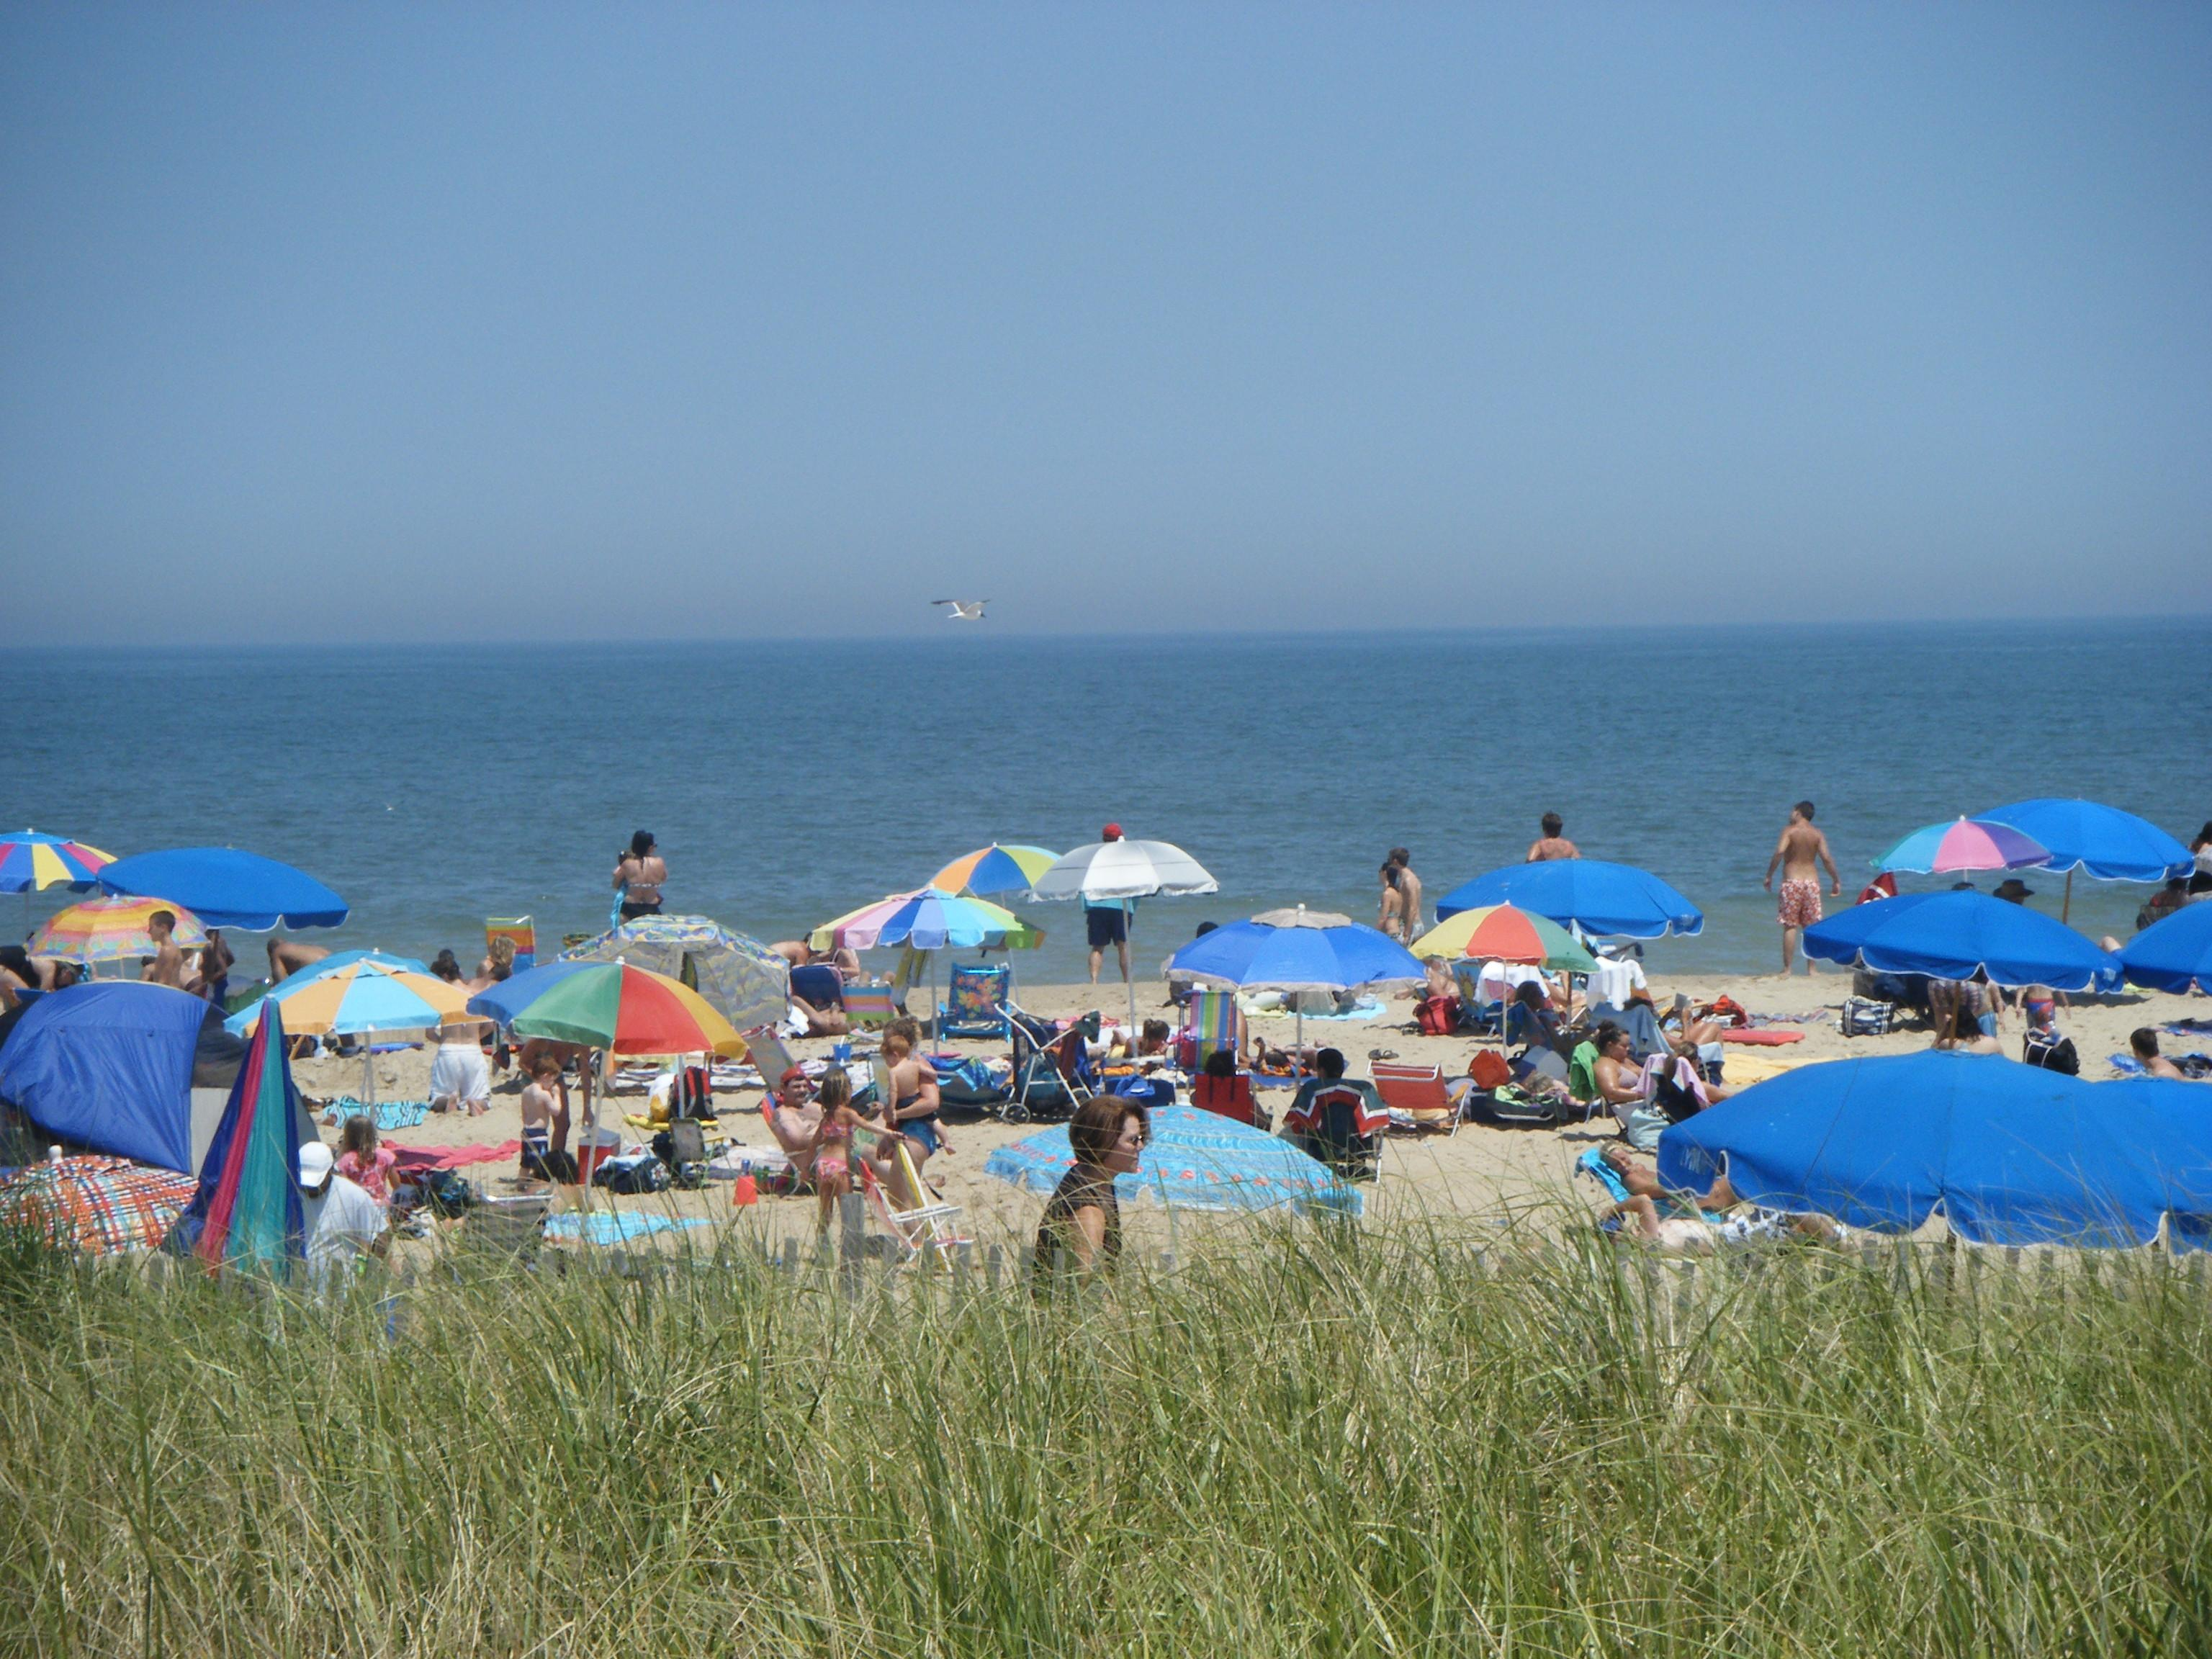 Rehoboth Beach is a popular vacation spot during the summer months